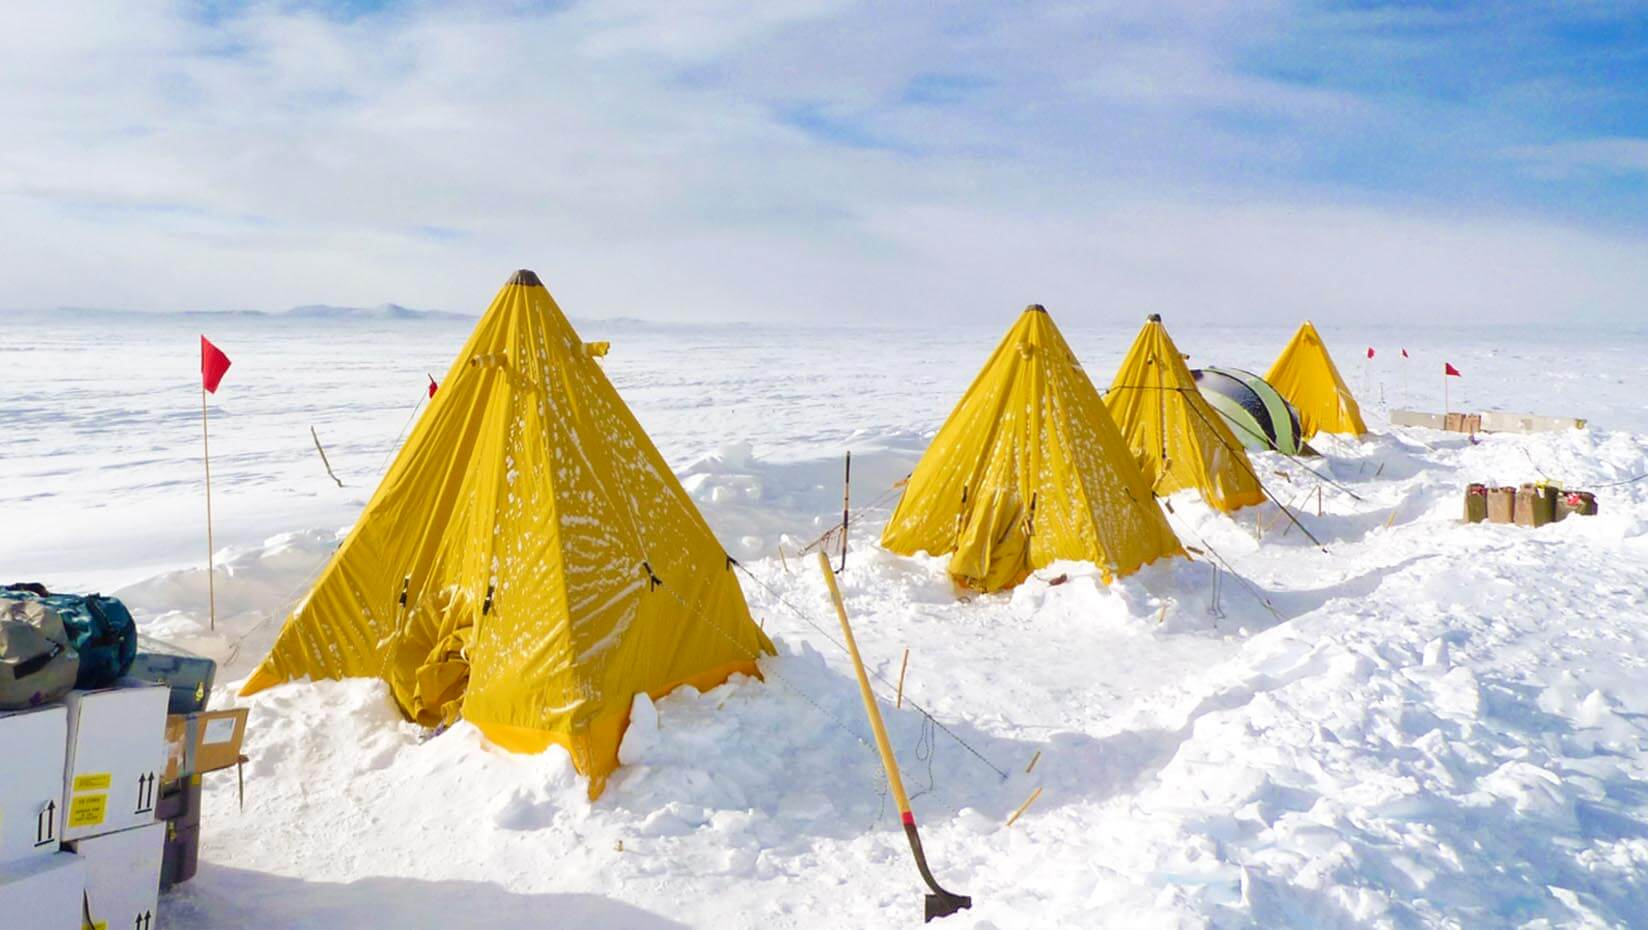 Yellow tents in the snow